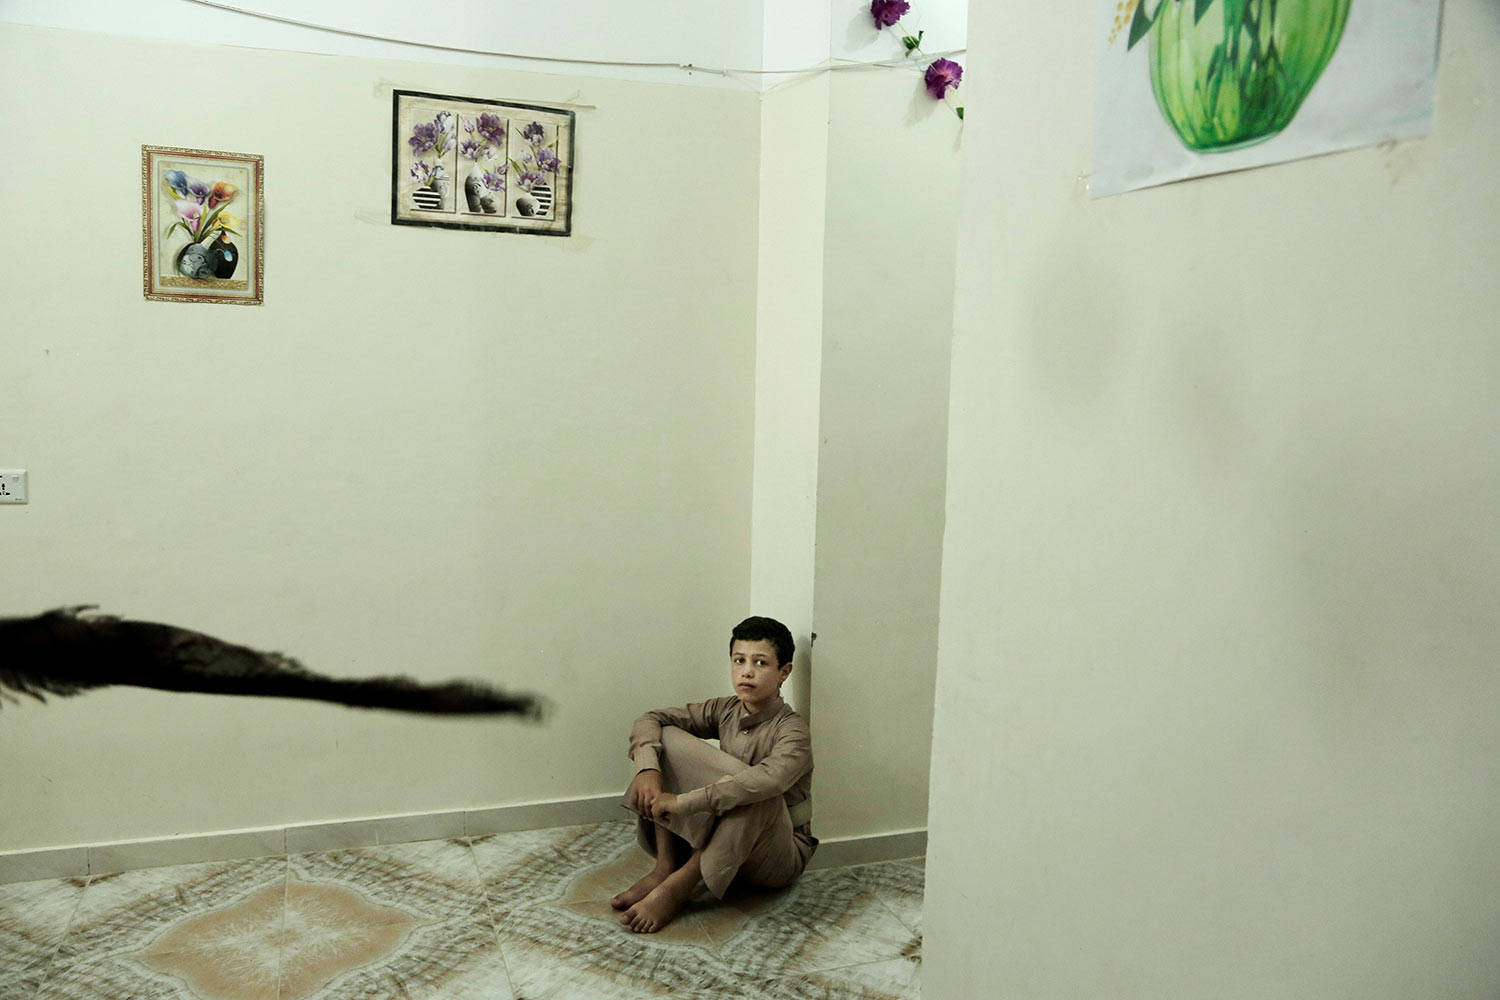 In this July 25, 2018 photo, 14 year-old Abdel Majeed Mohammed Al Folaihy sits on the floor at the Rehabilitation Of Children Recruited and Impacted By War in Yemen Project center in Marib, Yemen, (AP Photo/Nariman El-Mofty)